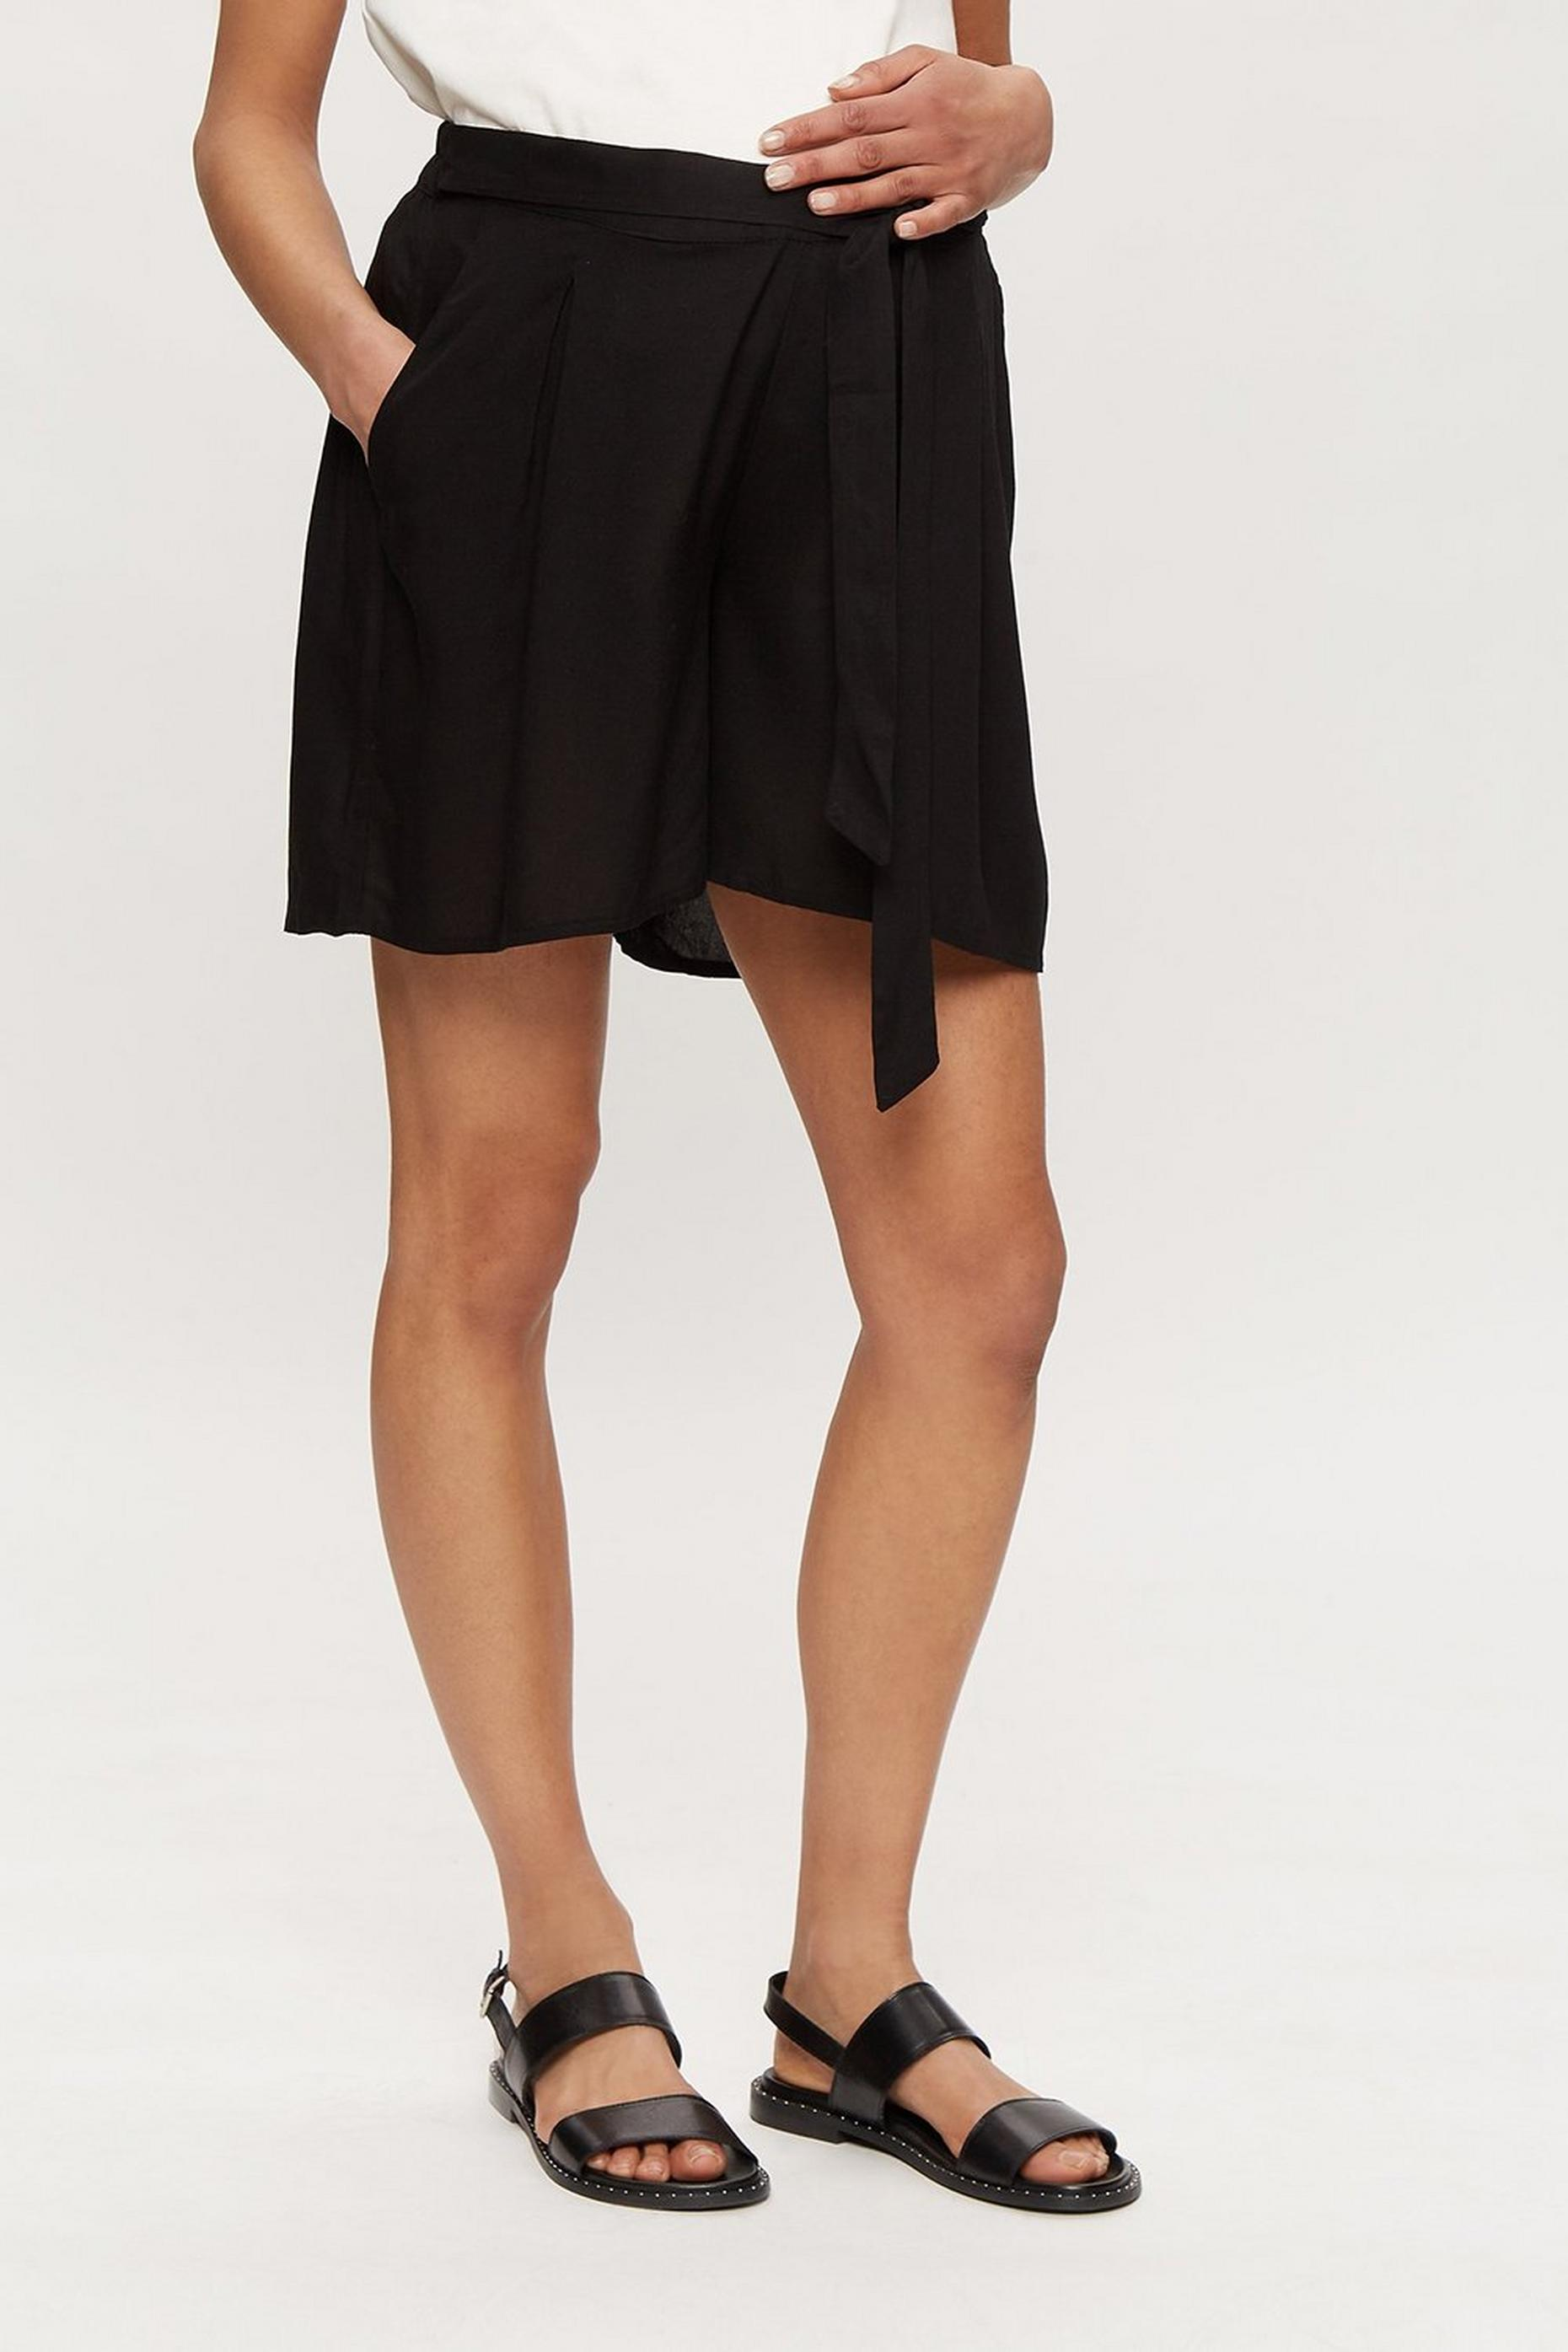 Maternity Black Tie Waist Short